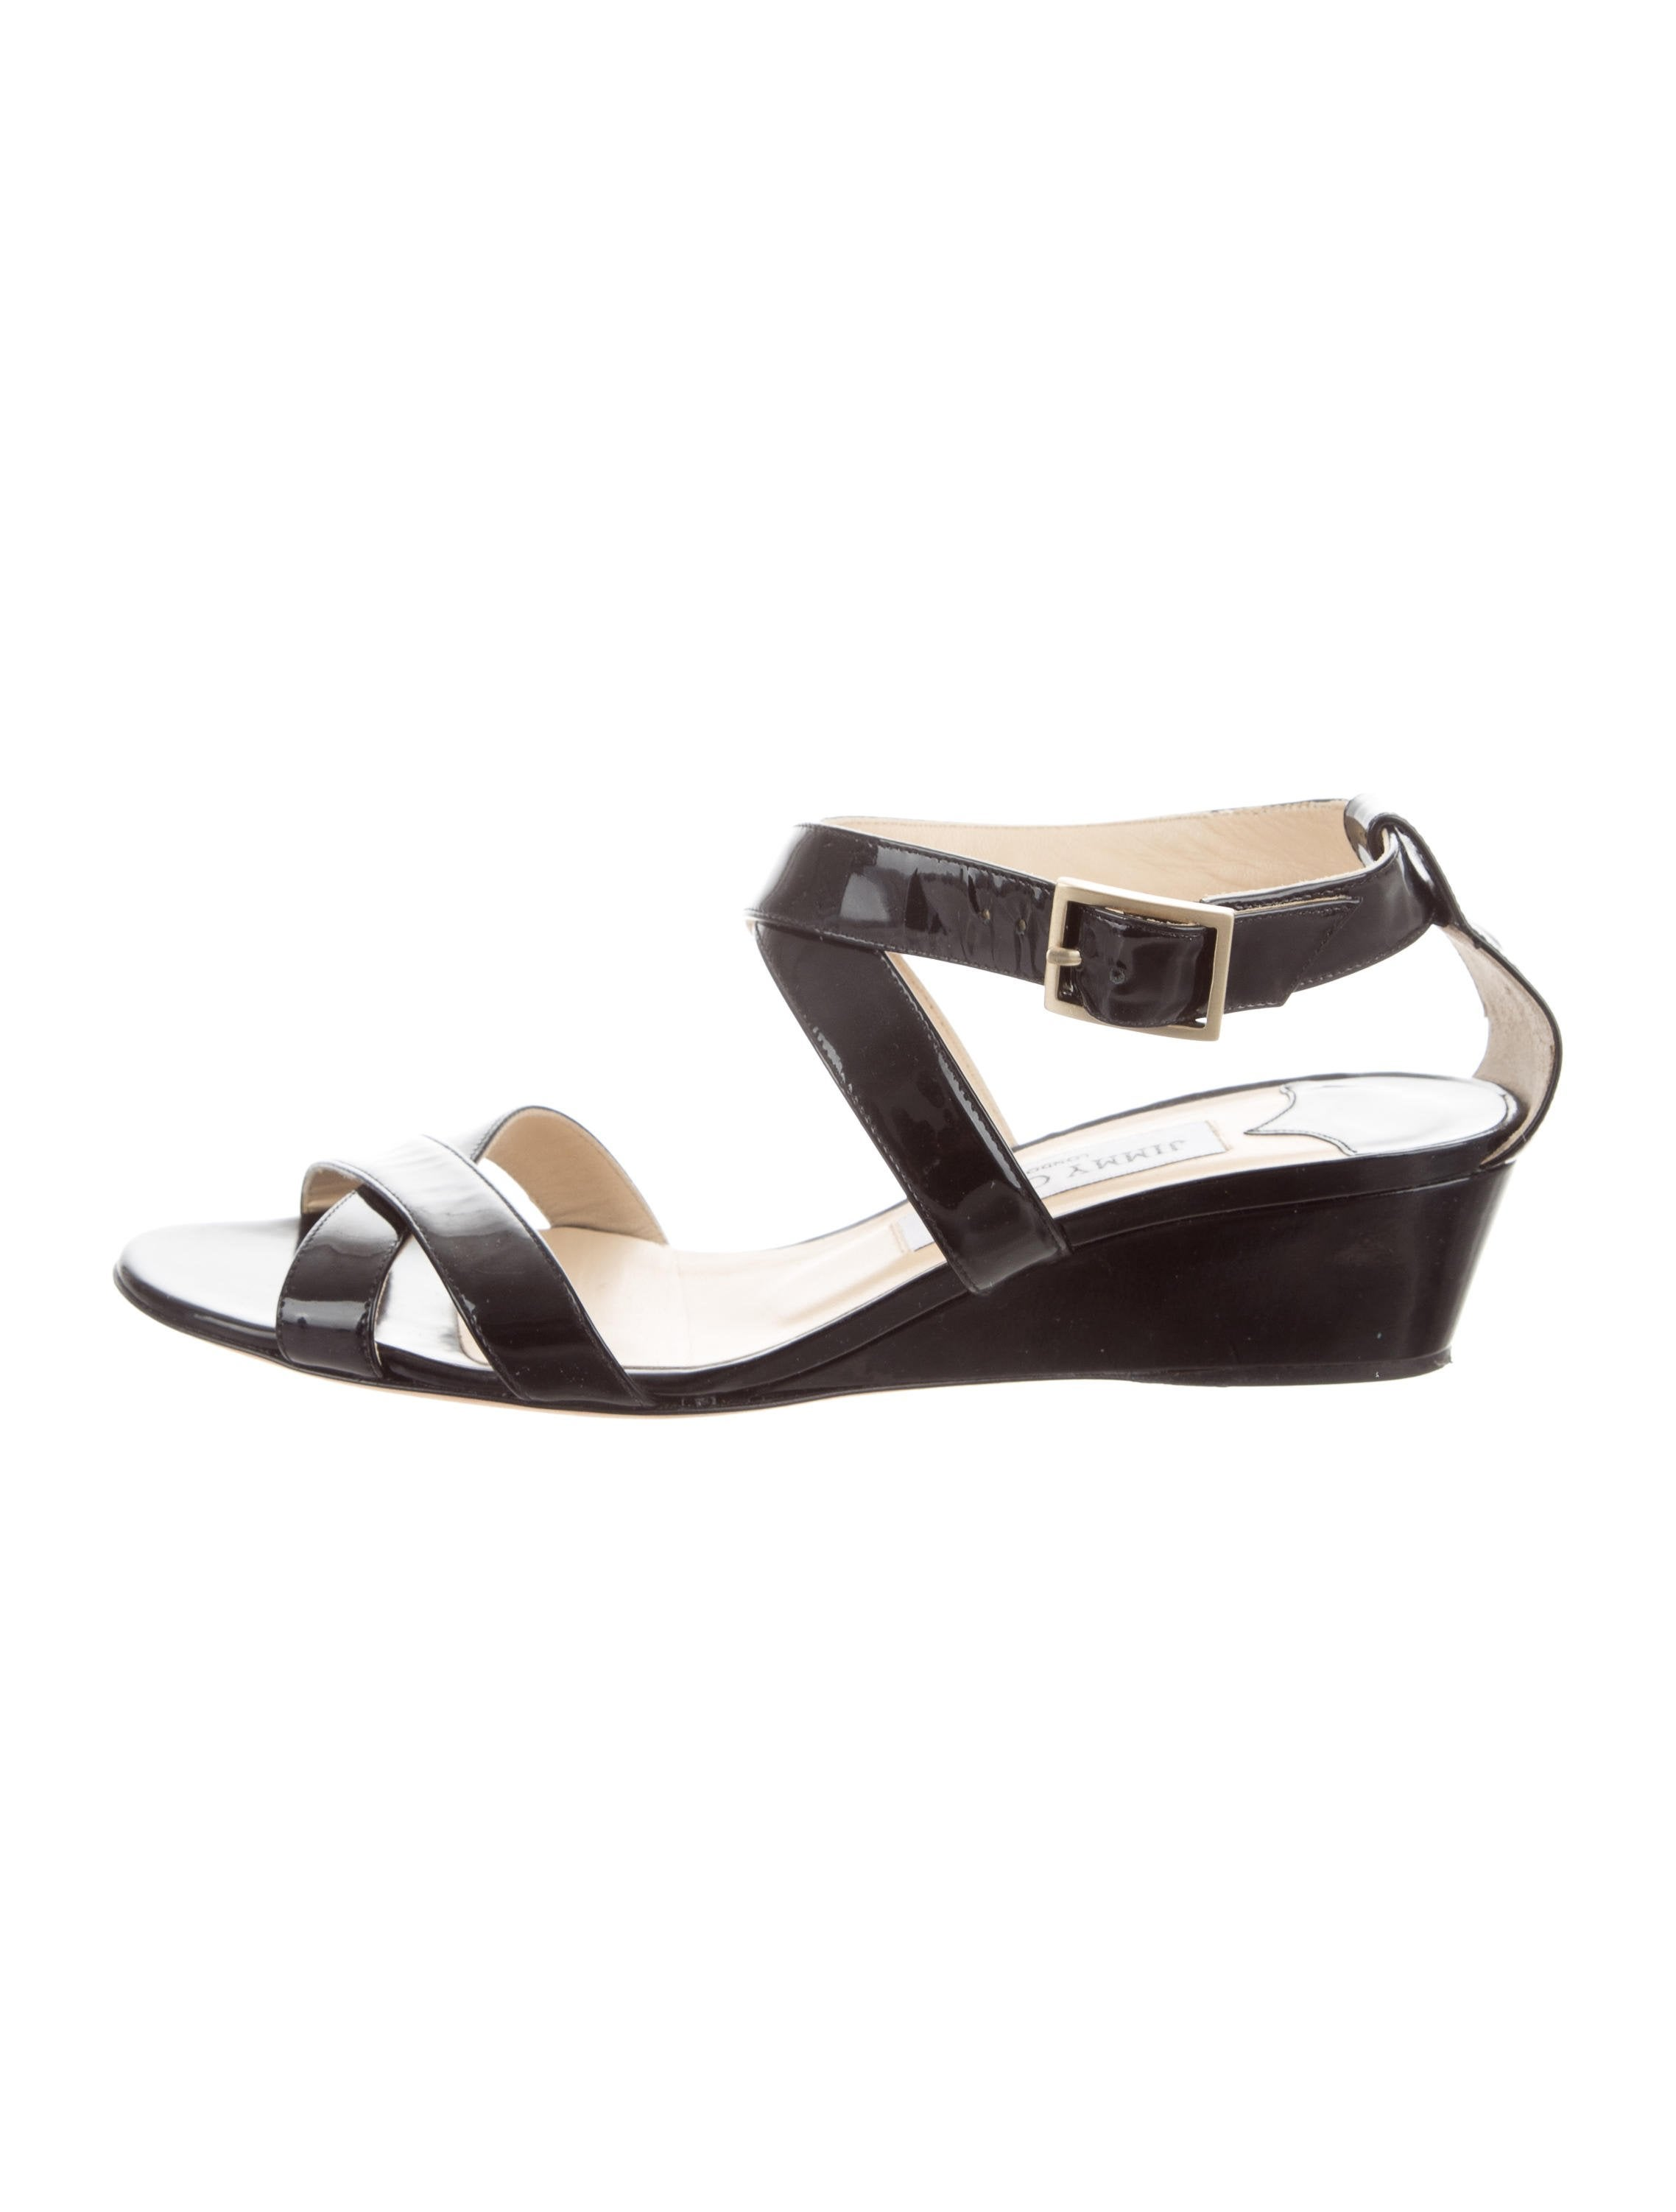 cheap buy authentic shop for cheap online Jimmy Choo Patent Multistrap Wedges manchester great sale cheap for sale iYs6x